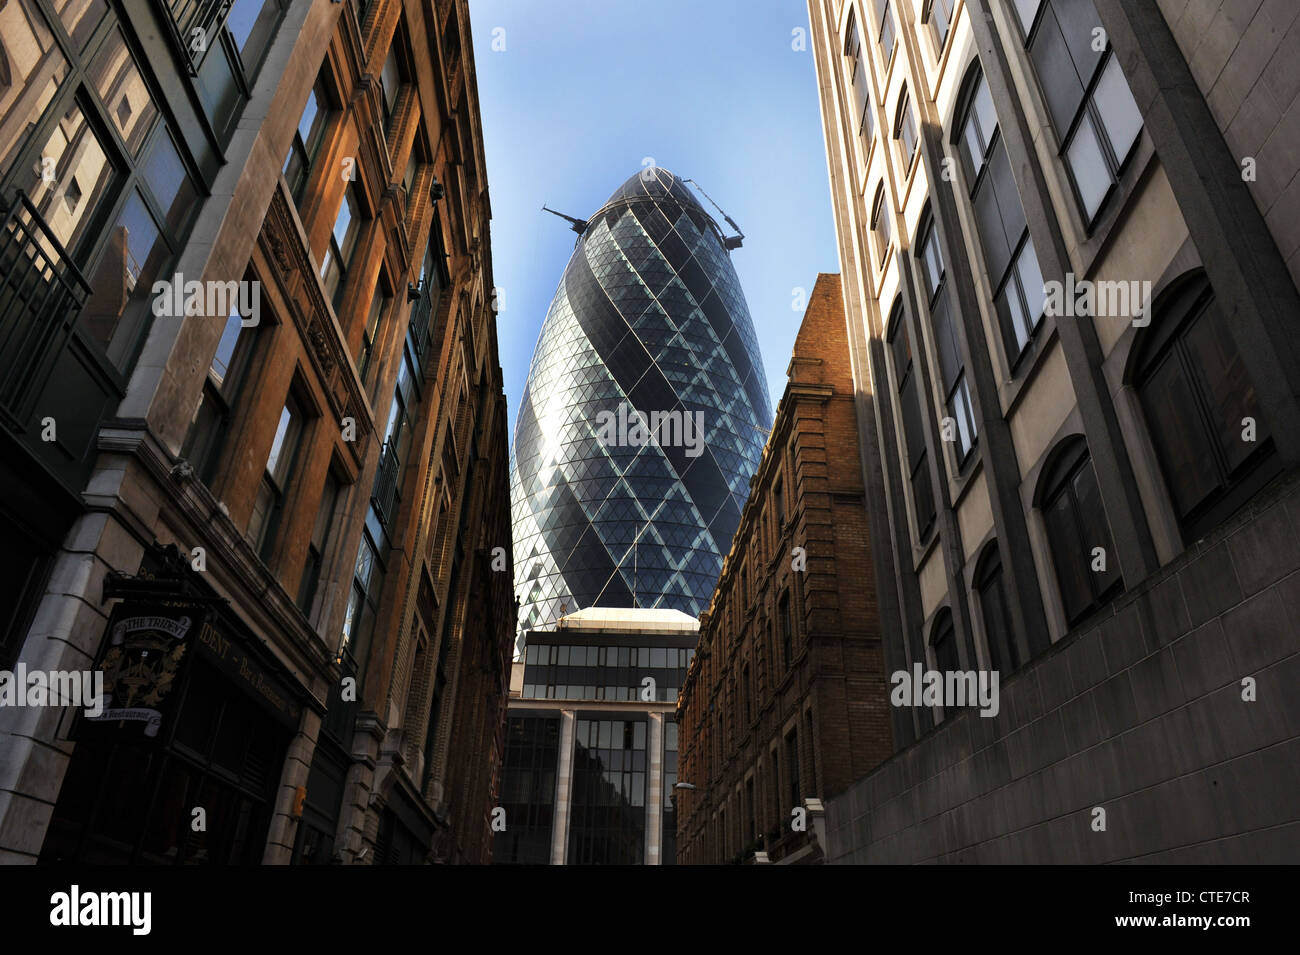 The Gherkin Building, City of London in the Financial District of London UK - Stock Image